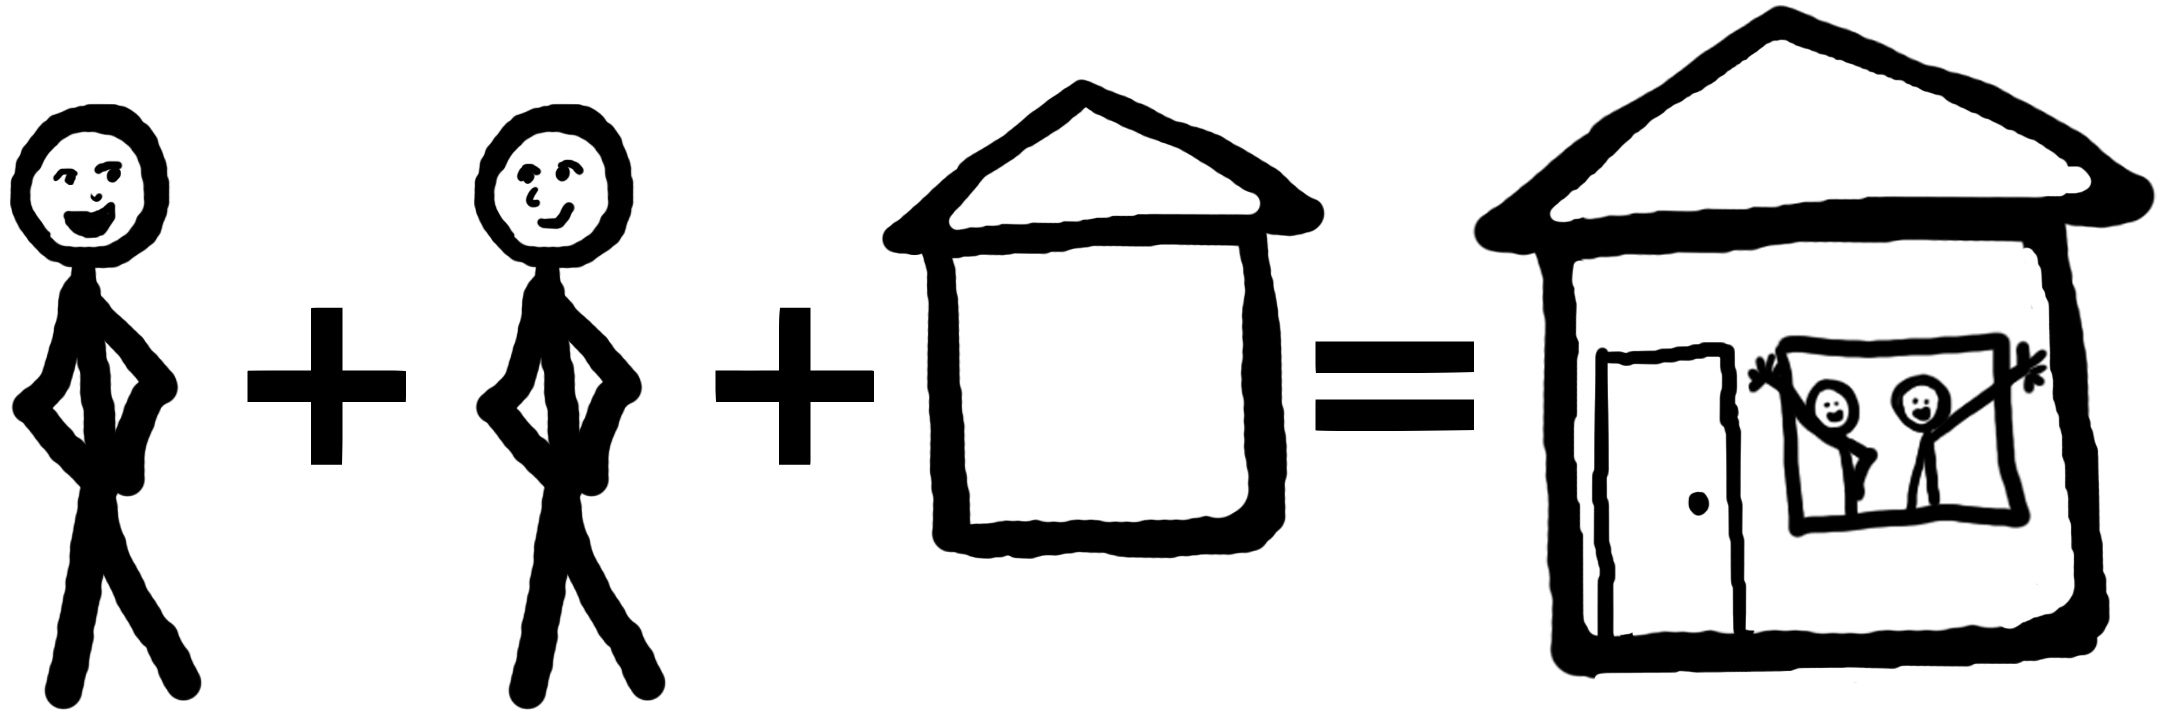 Housing_Math.png